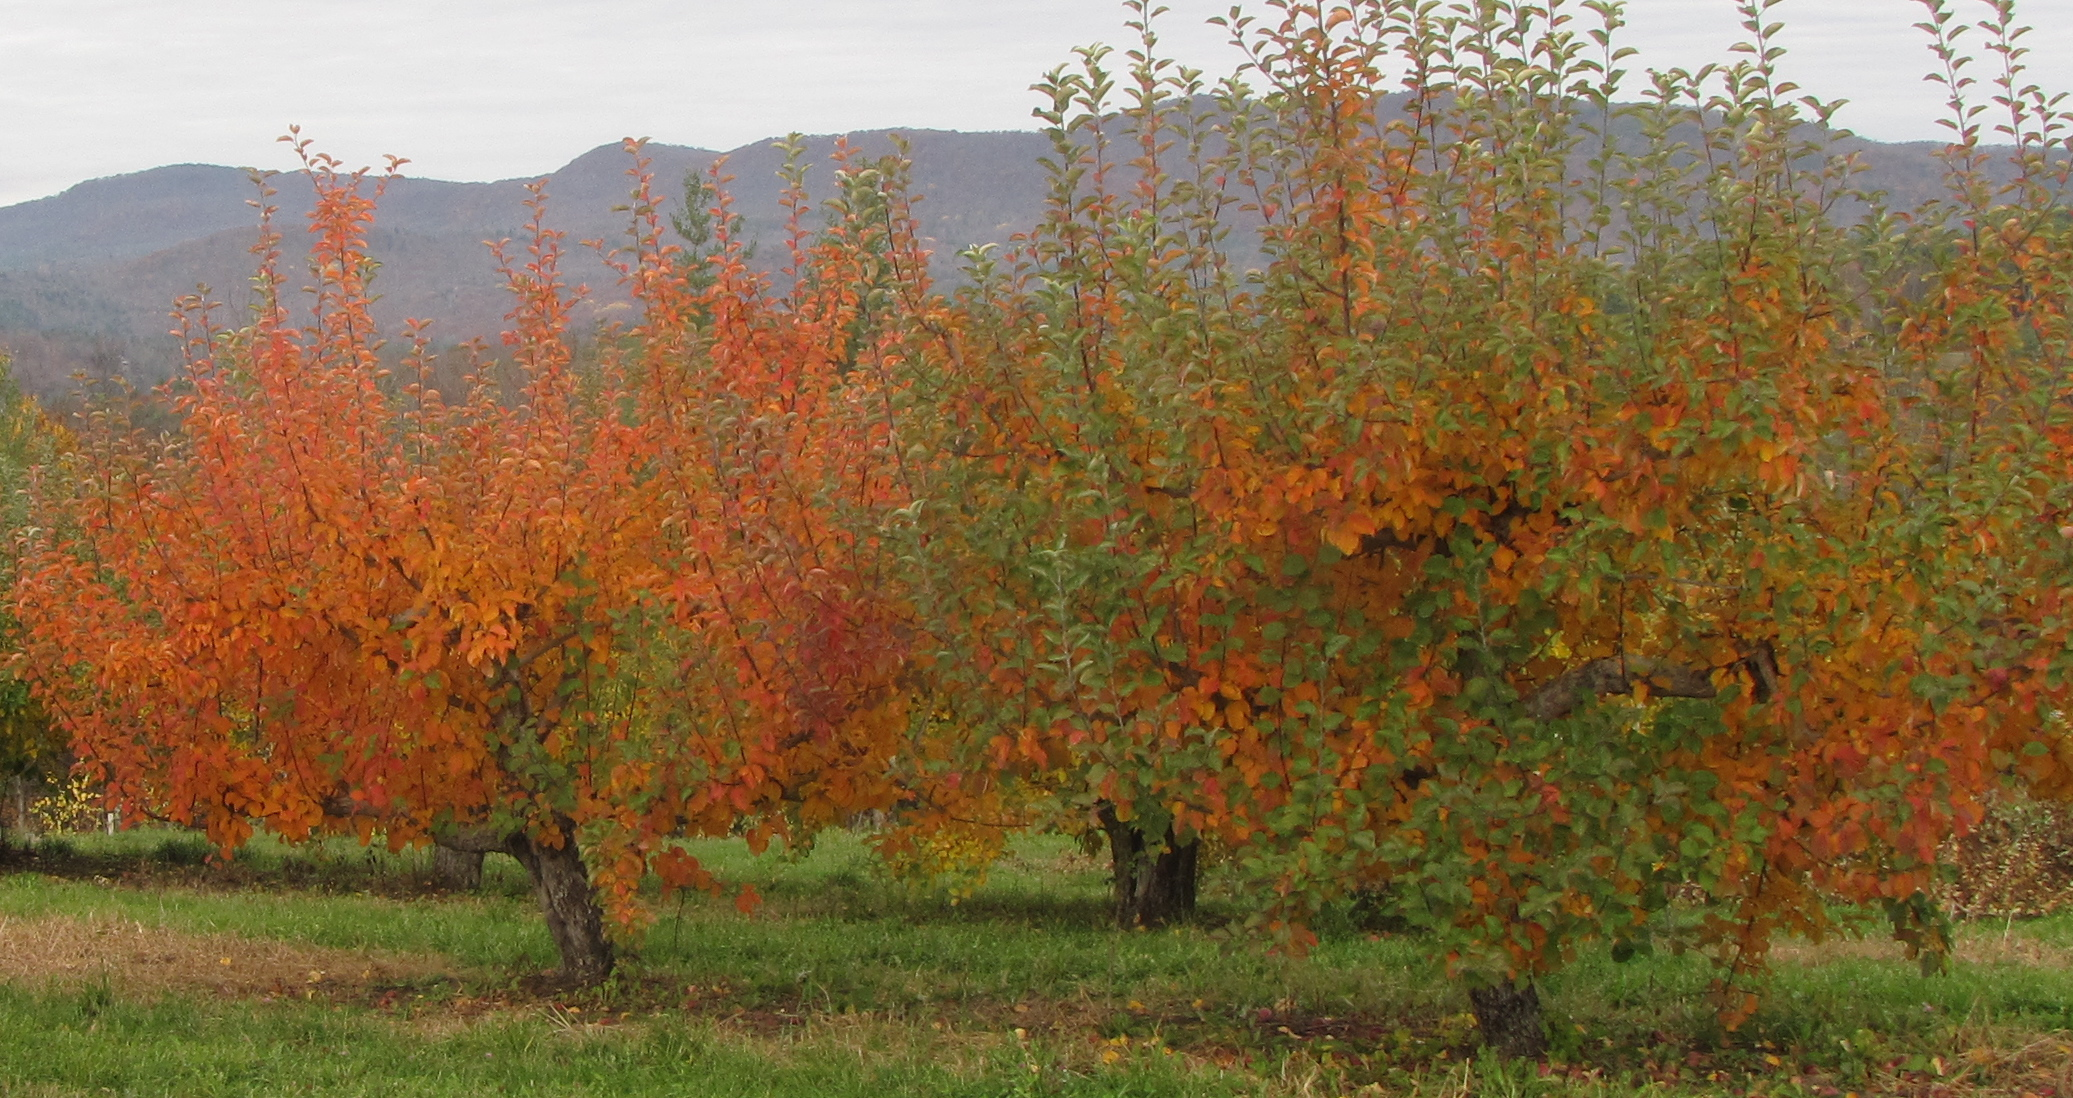 The apple orchard makes a distinctive contribution to fall foliage at Wellwood Orchards, Springfield, Vermont. (Russell Steven Powell photo)